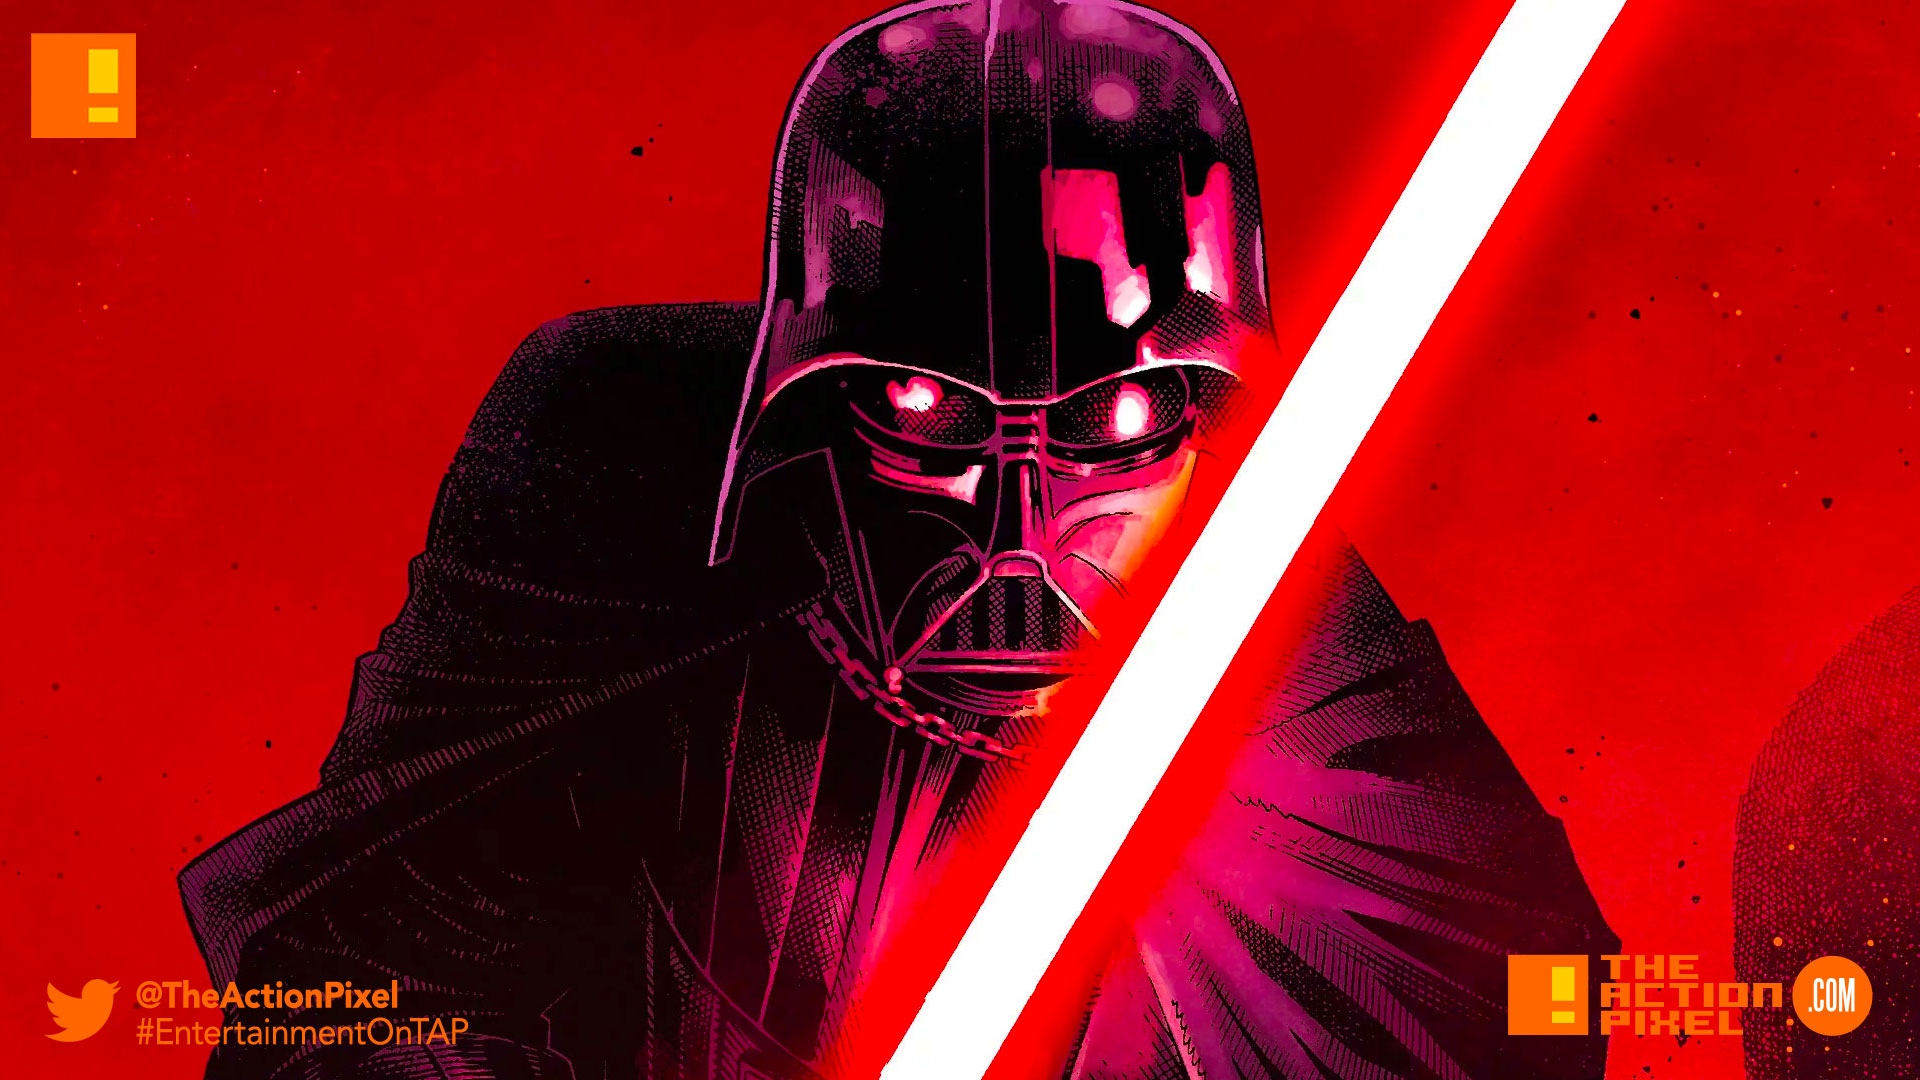 darth vader,marvel, the action pixel, entertainment on tap, star wars, lightsaber,